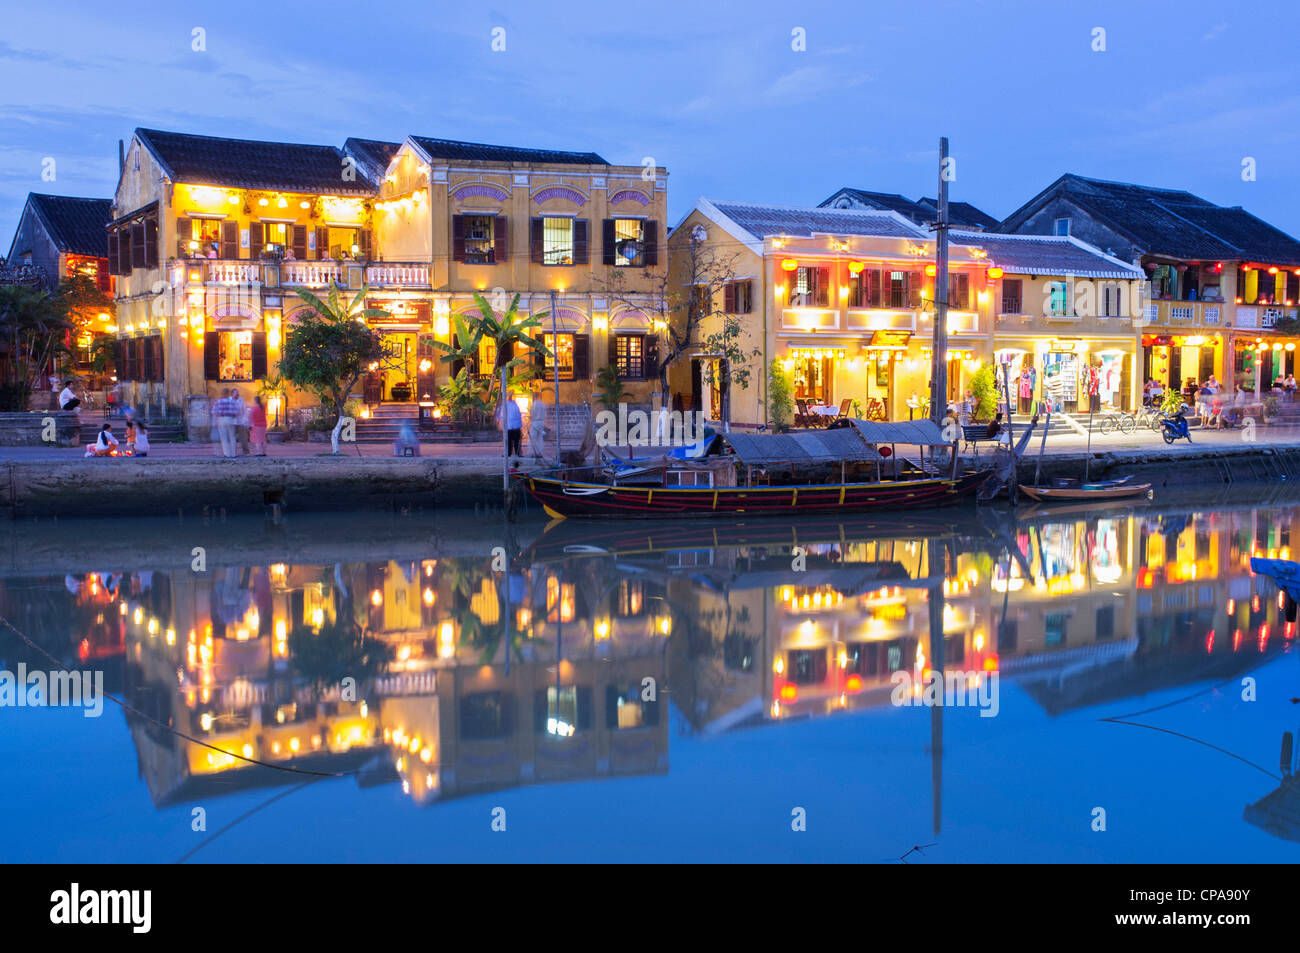 Dusk view of UNESCO world heritage town of Hoian in Vietnam - Stock Image